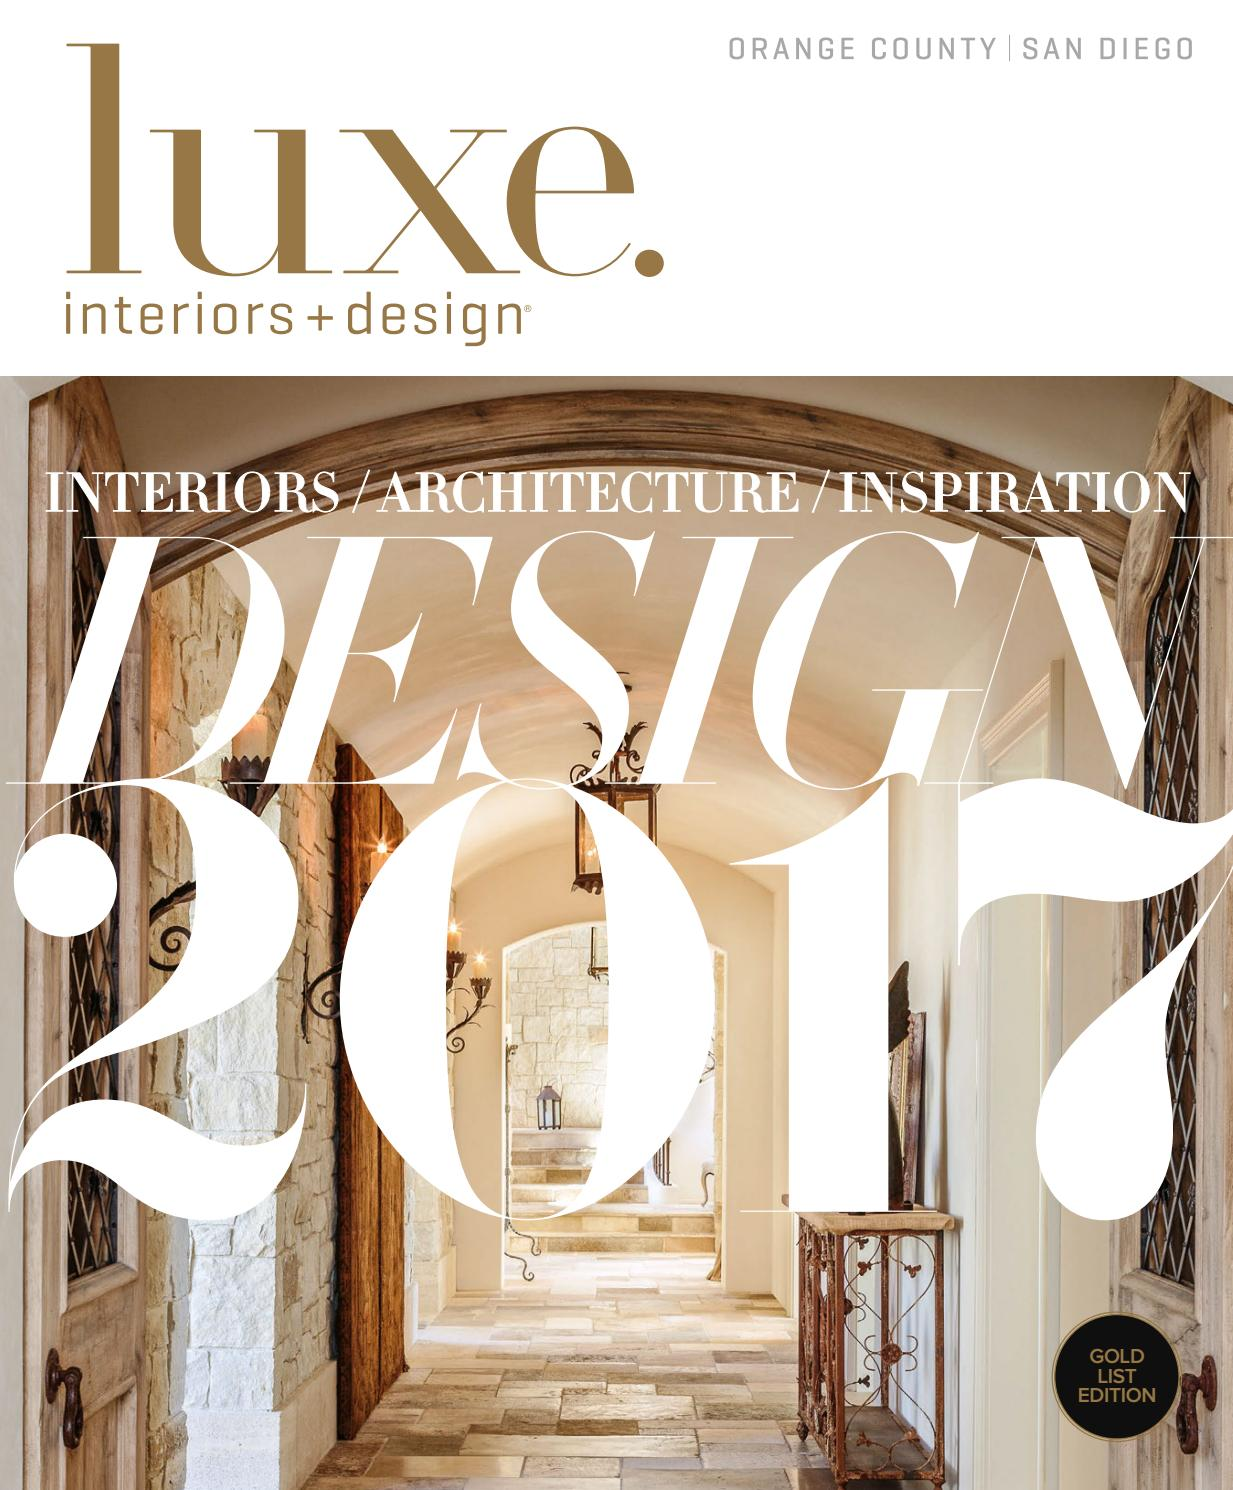 a i s spectacular september interior design s hall interior architecture new york Luxe Magazine January 2017 Orange County-San Diego by SANDOW® - issuu